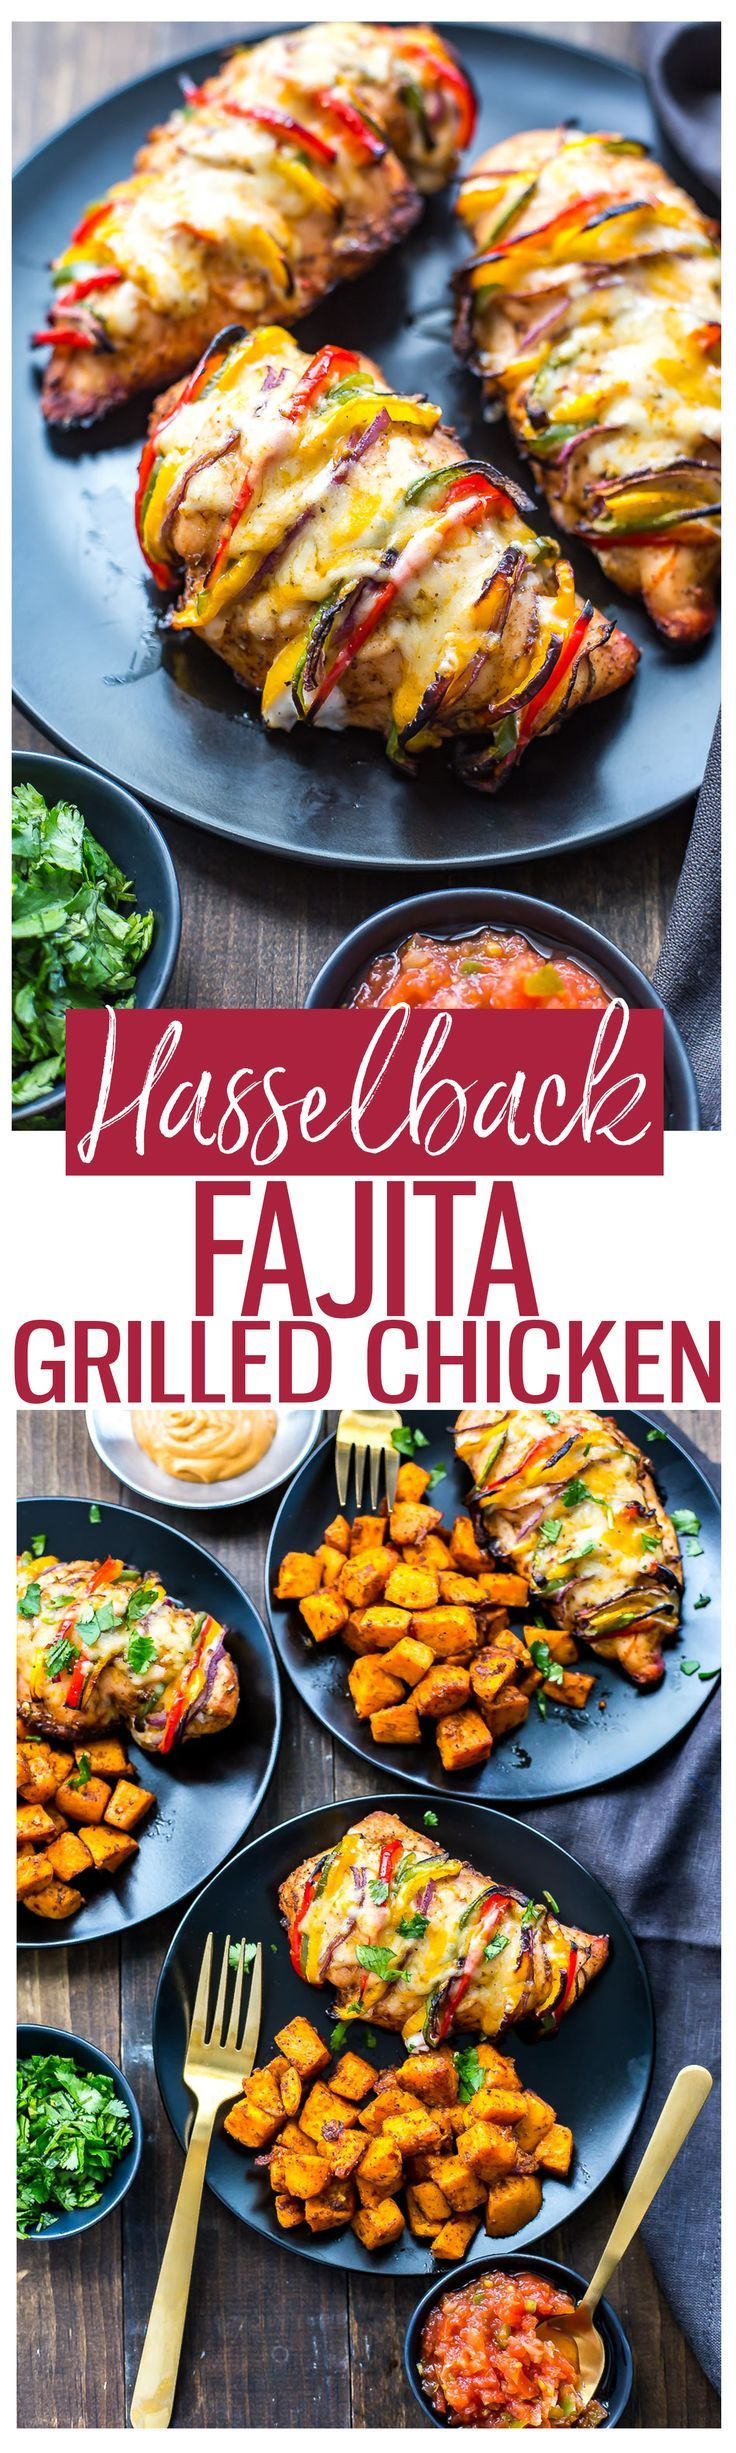 Grilled Hassleback Fajita Stuffed Chicken | Stuffed with bell peppers & red onions | Gluten Free | Low Carb